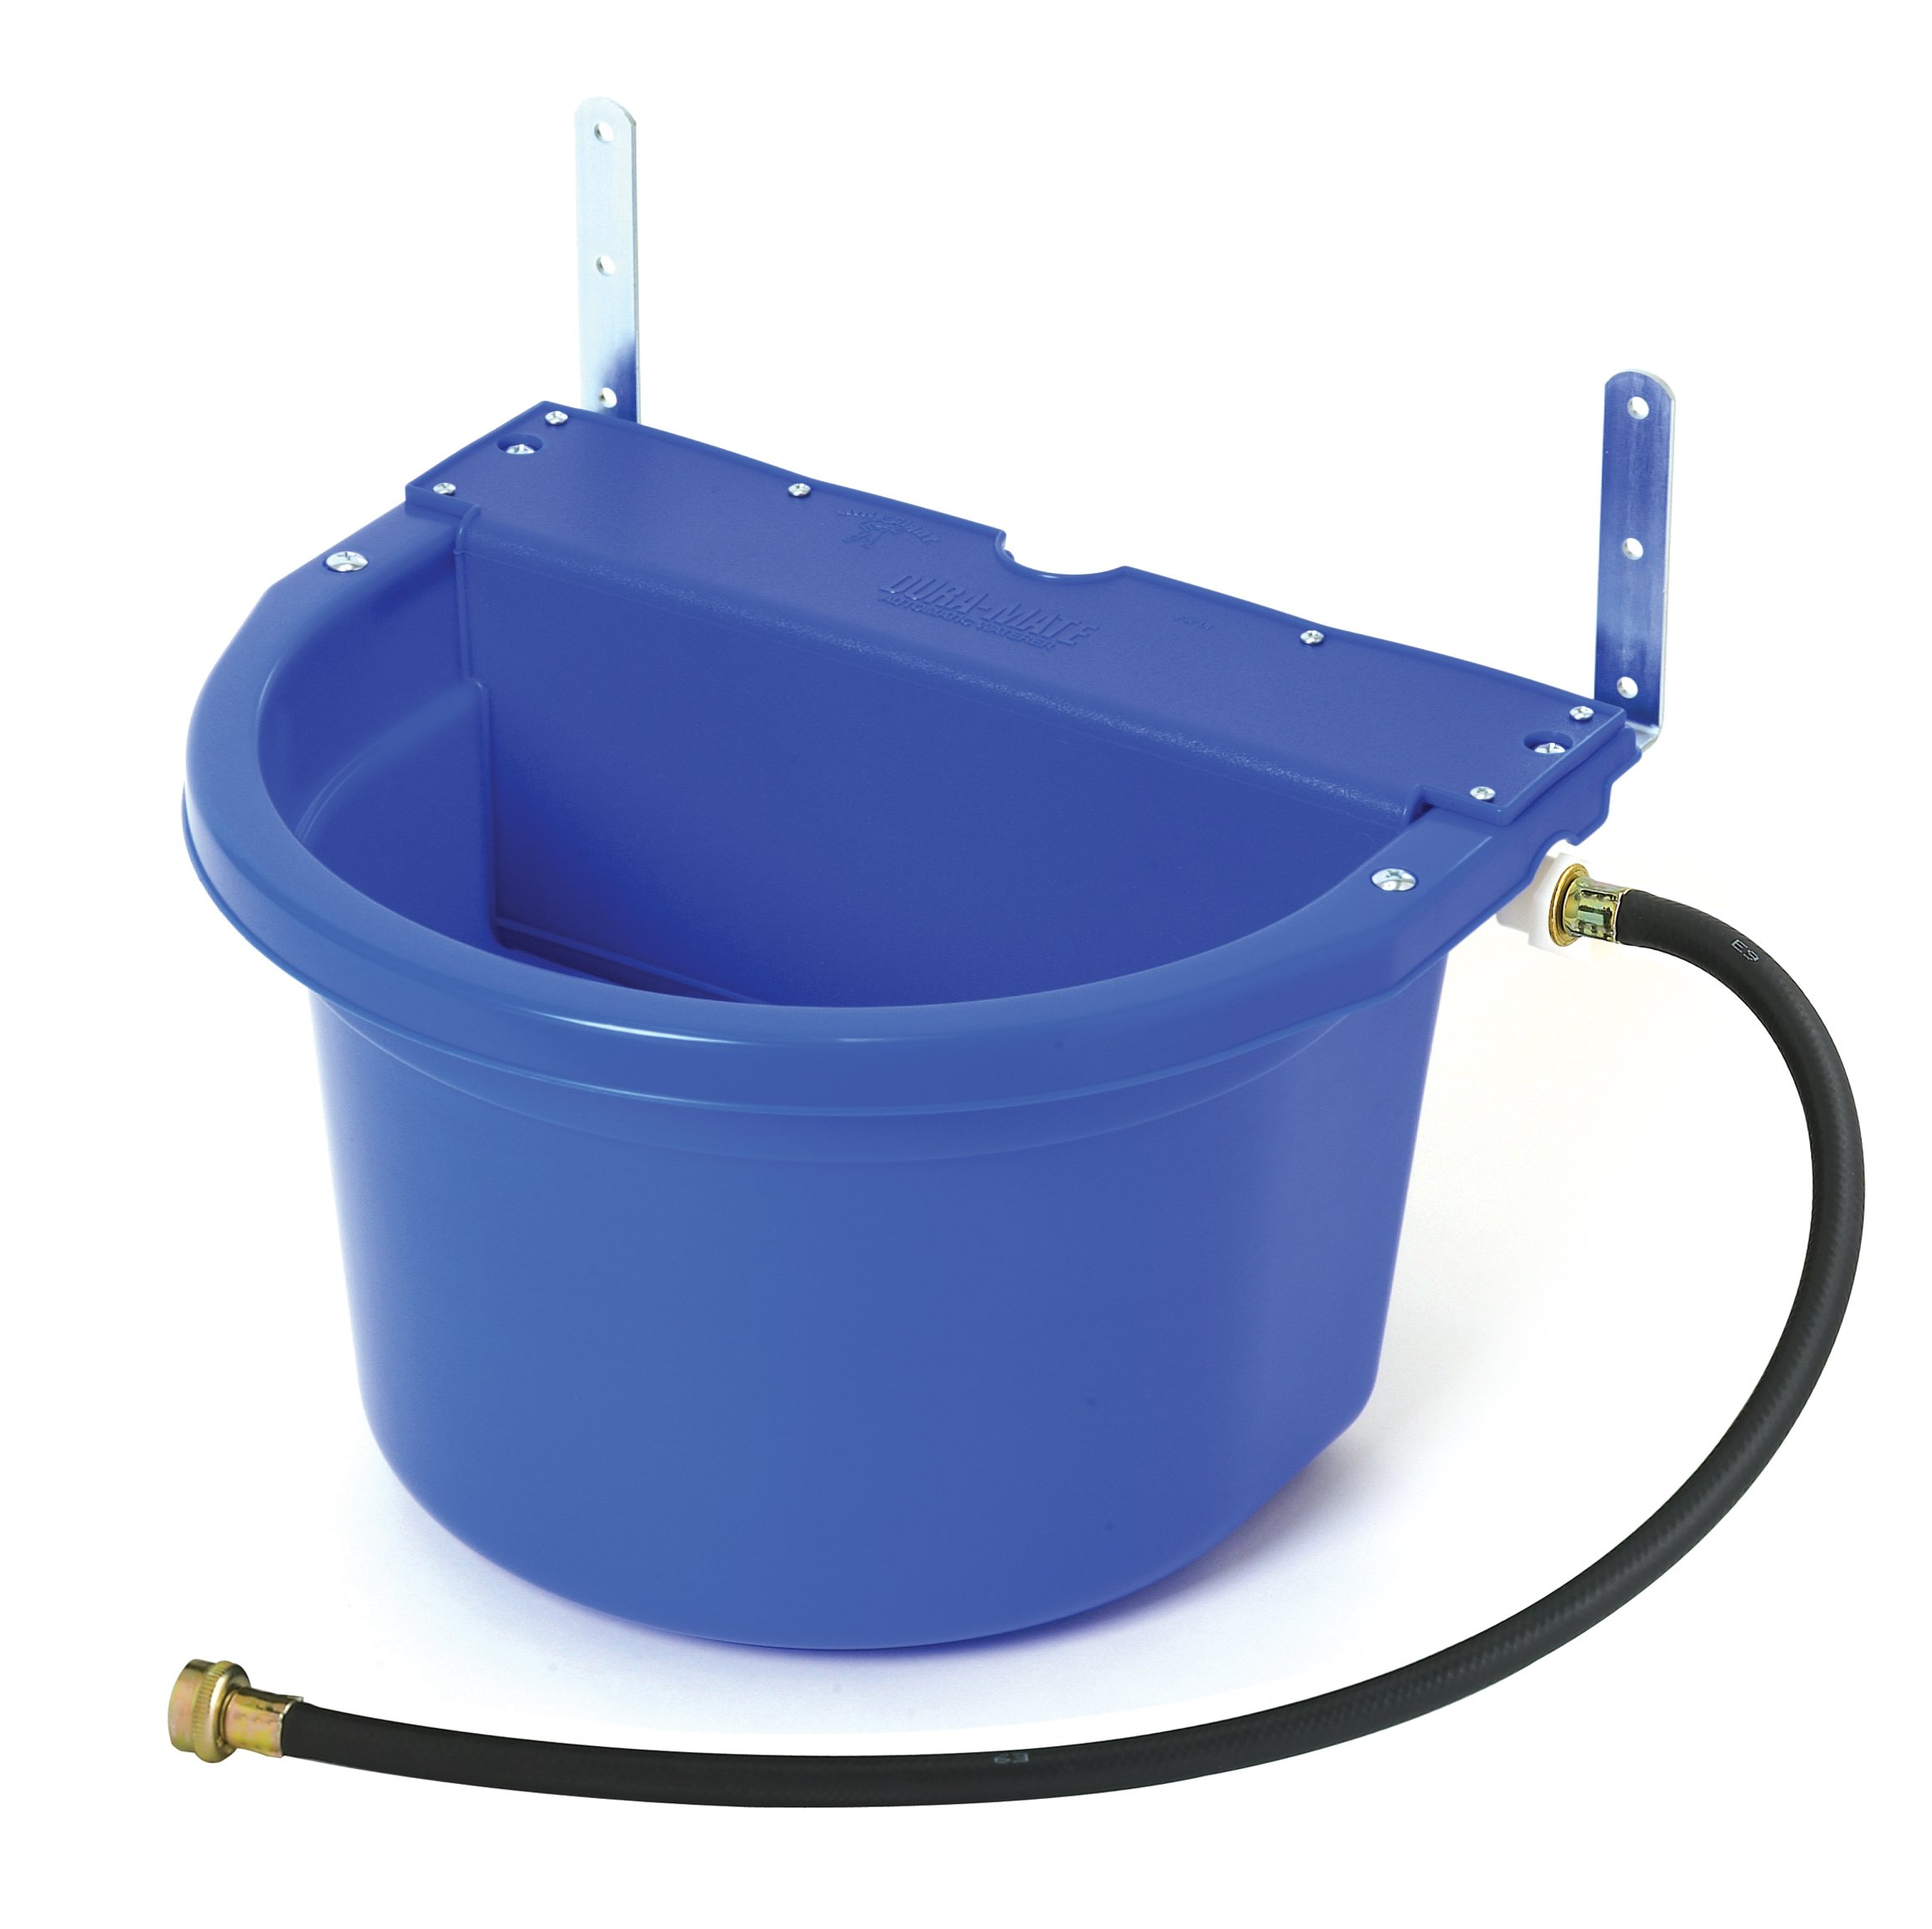 LITTLE GIANT Duramate Automatic Waterer, Blue